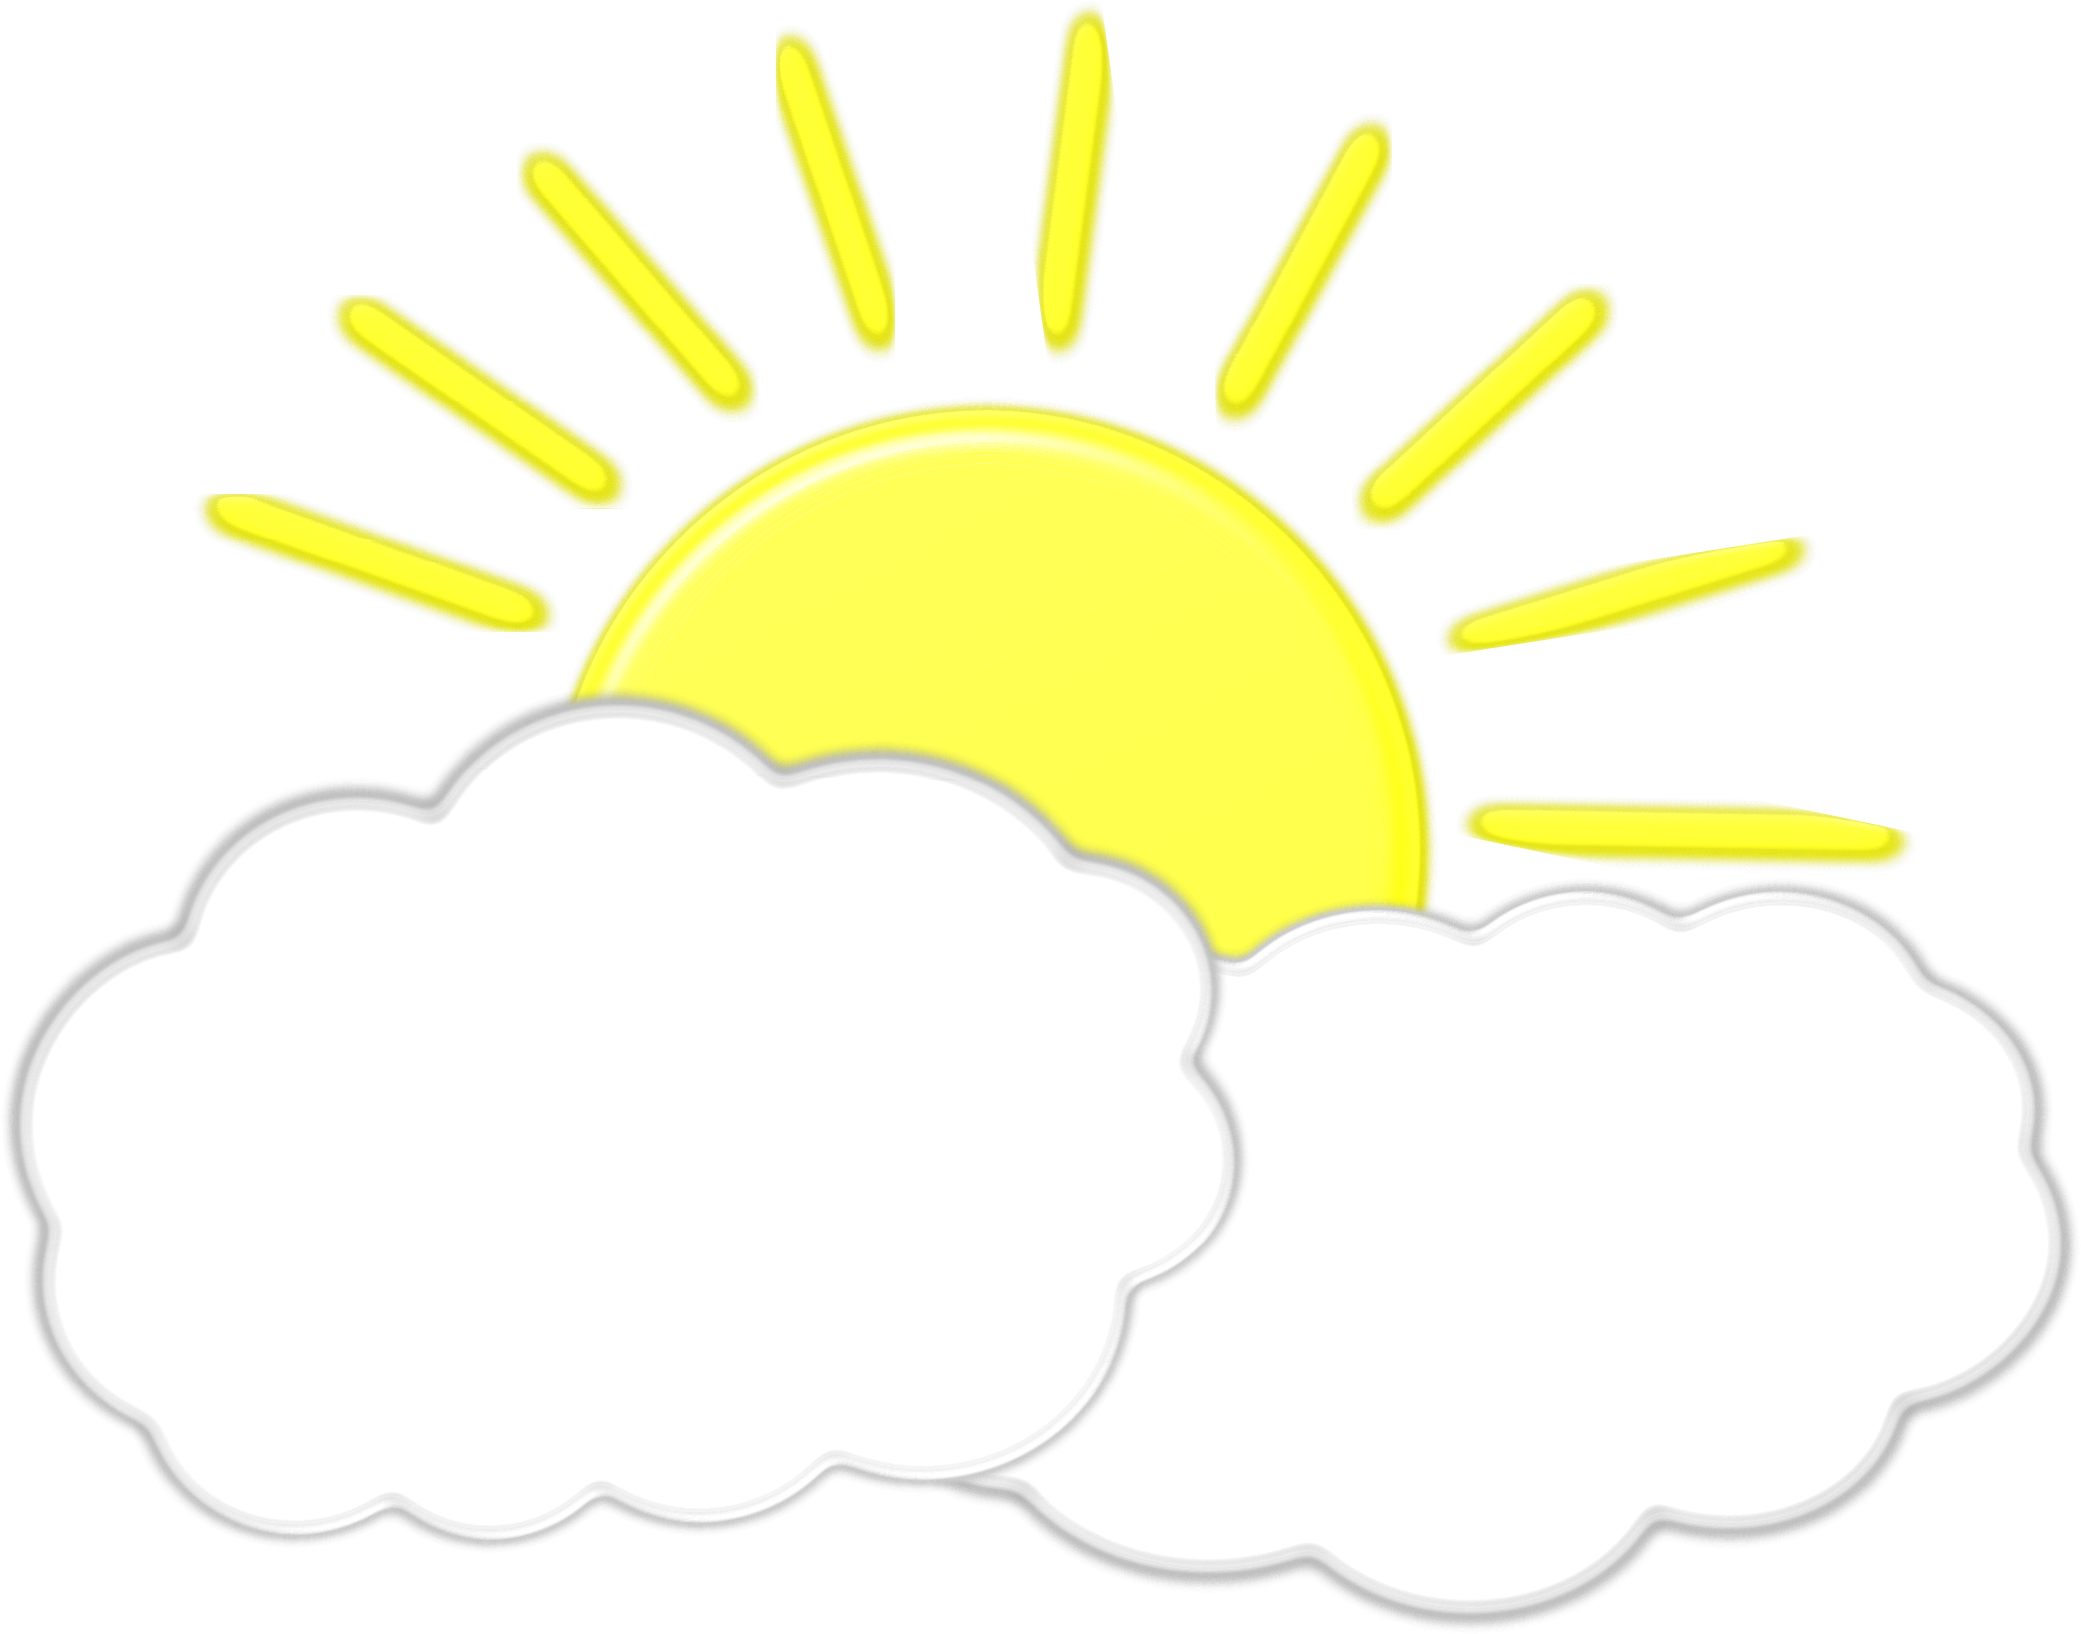 Sun and clouds clipart png. Collection of high